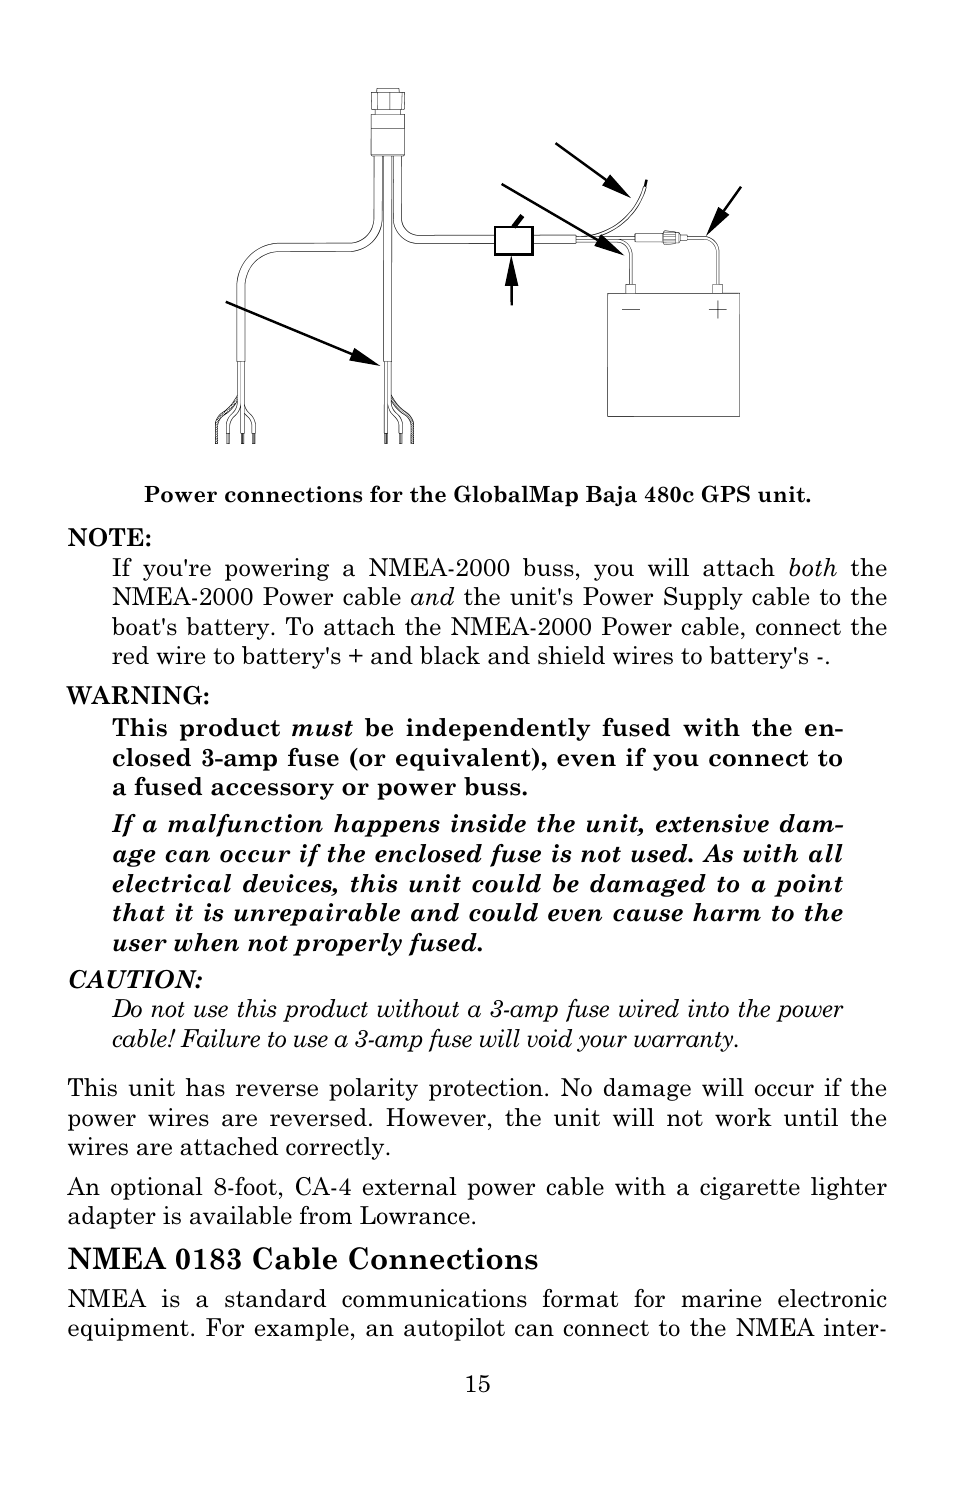 Lowrance Nmea 0183 Wiring Trusted Schematics Diagram For Elite 5 Hdi Cable Connections Electronic Globalmap